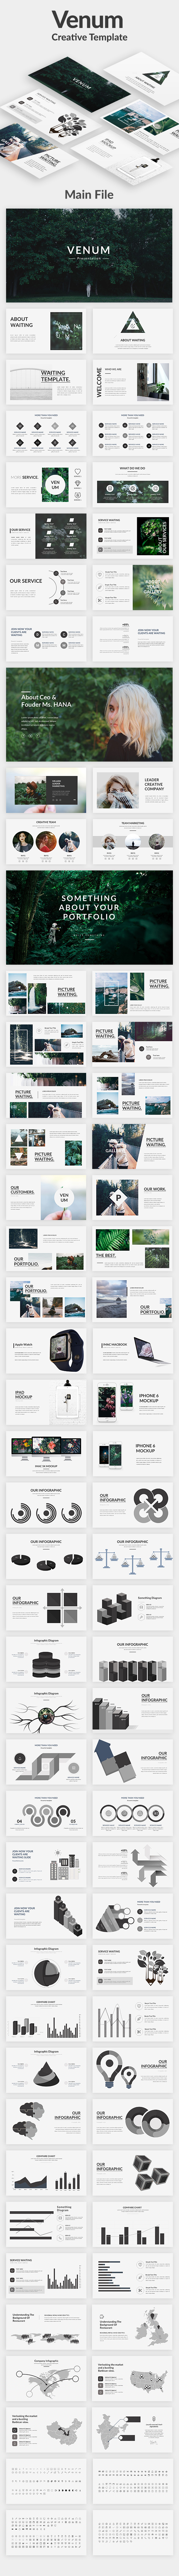 GraphicRiver Venum Creative Powerpoint Template 20514607